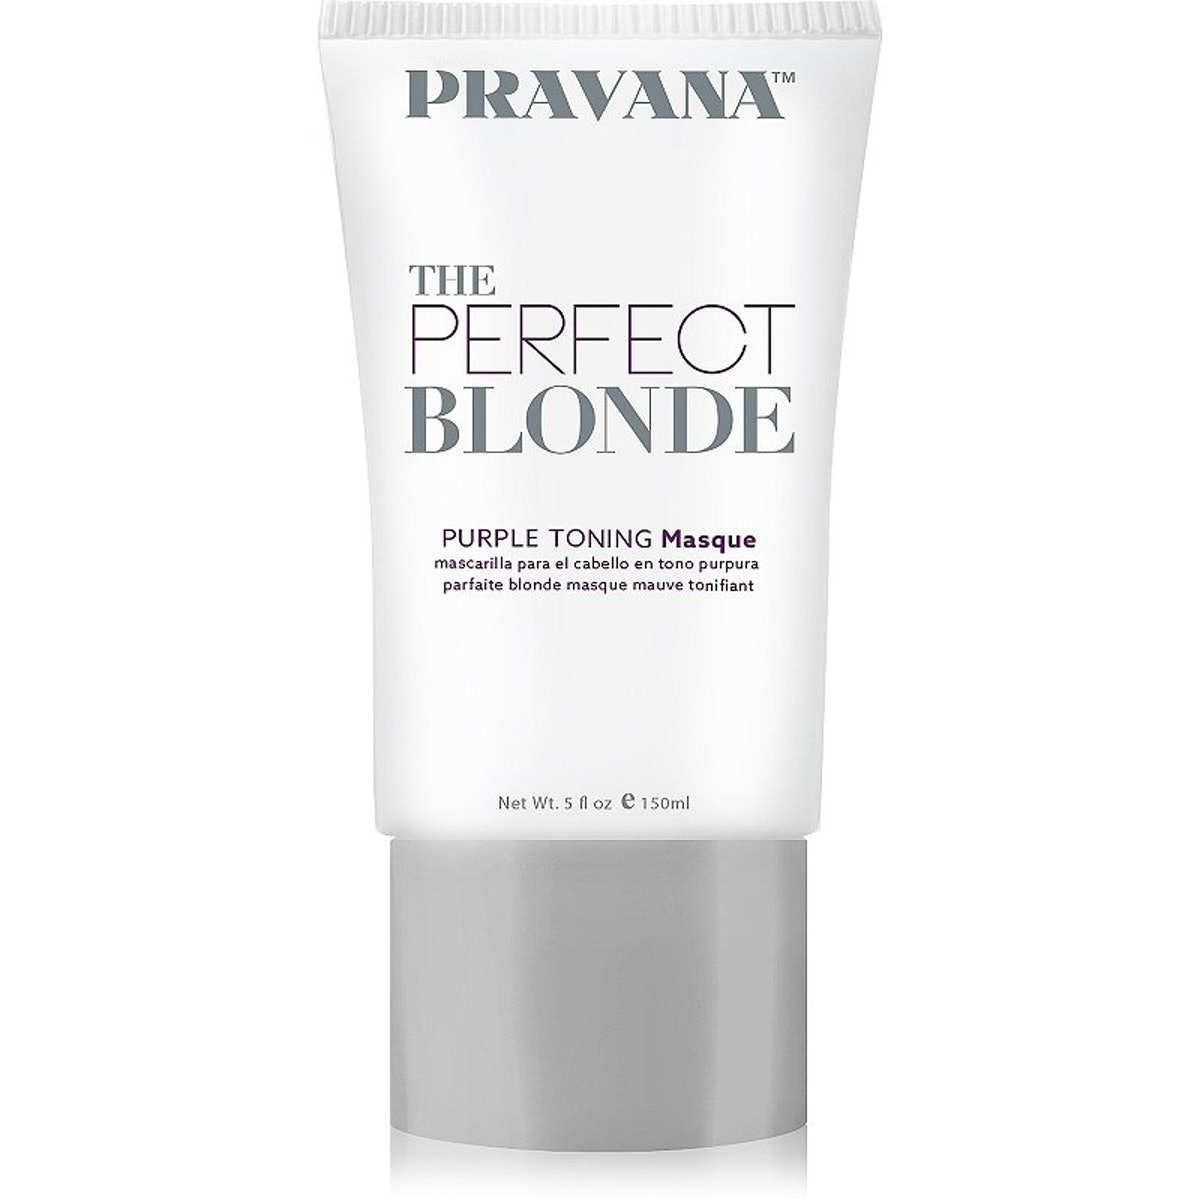 The Perfect Blonde Masque